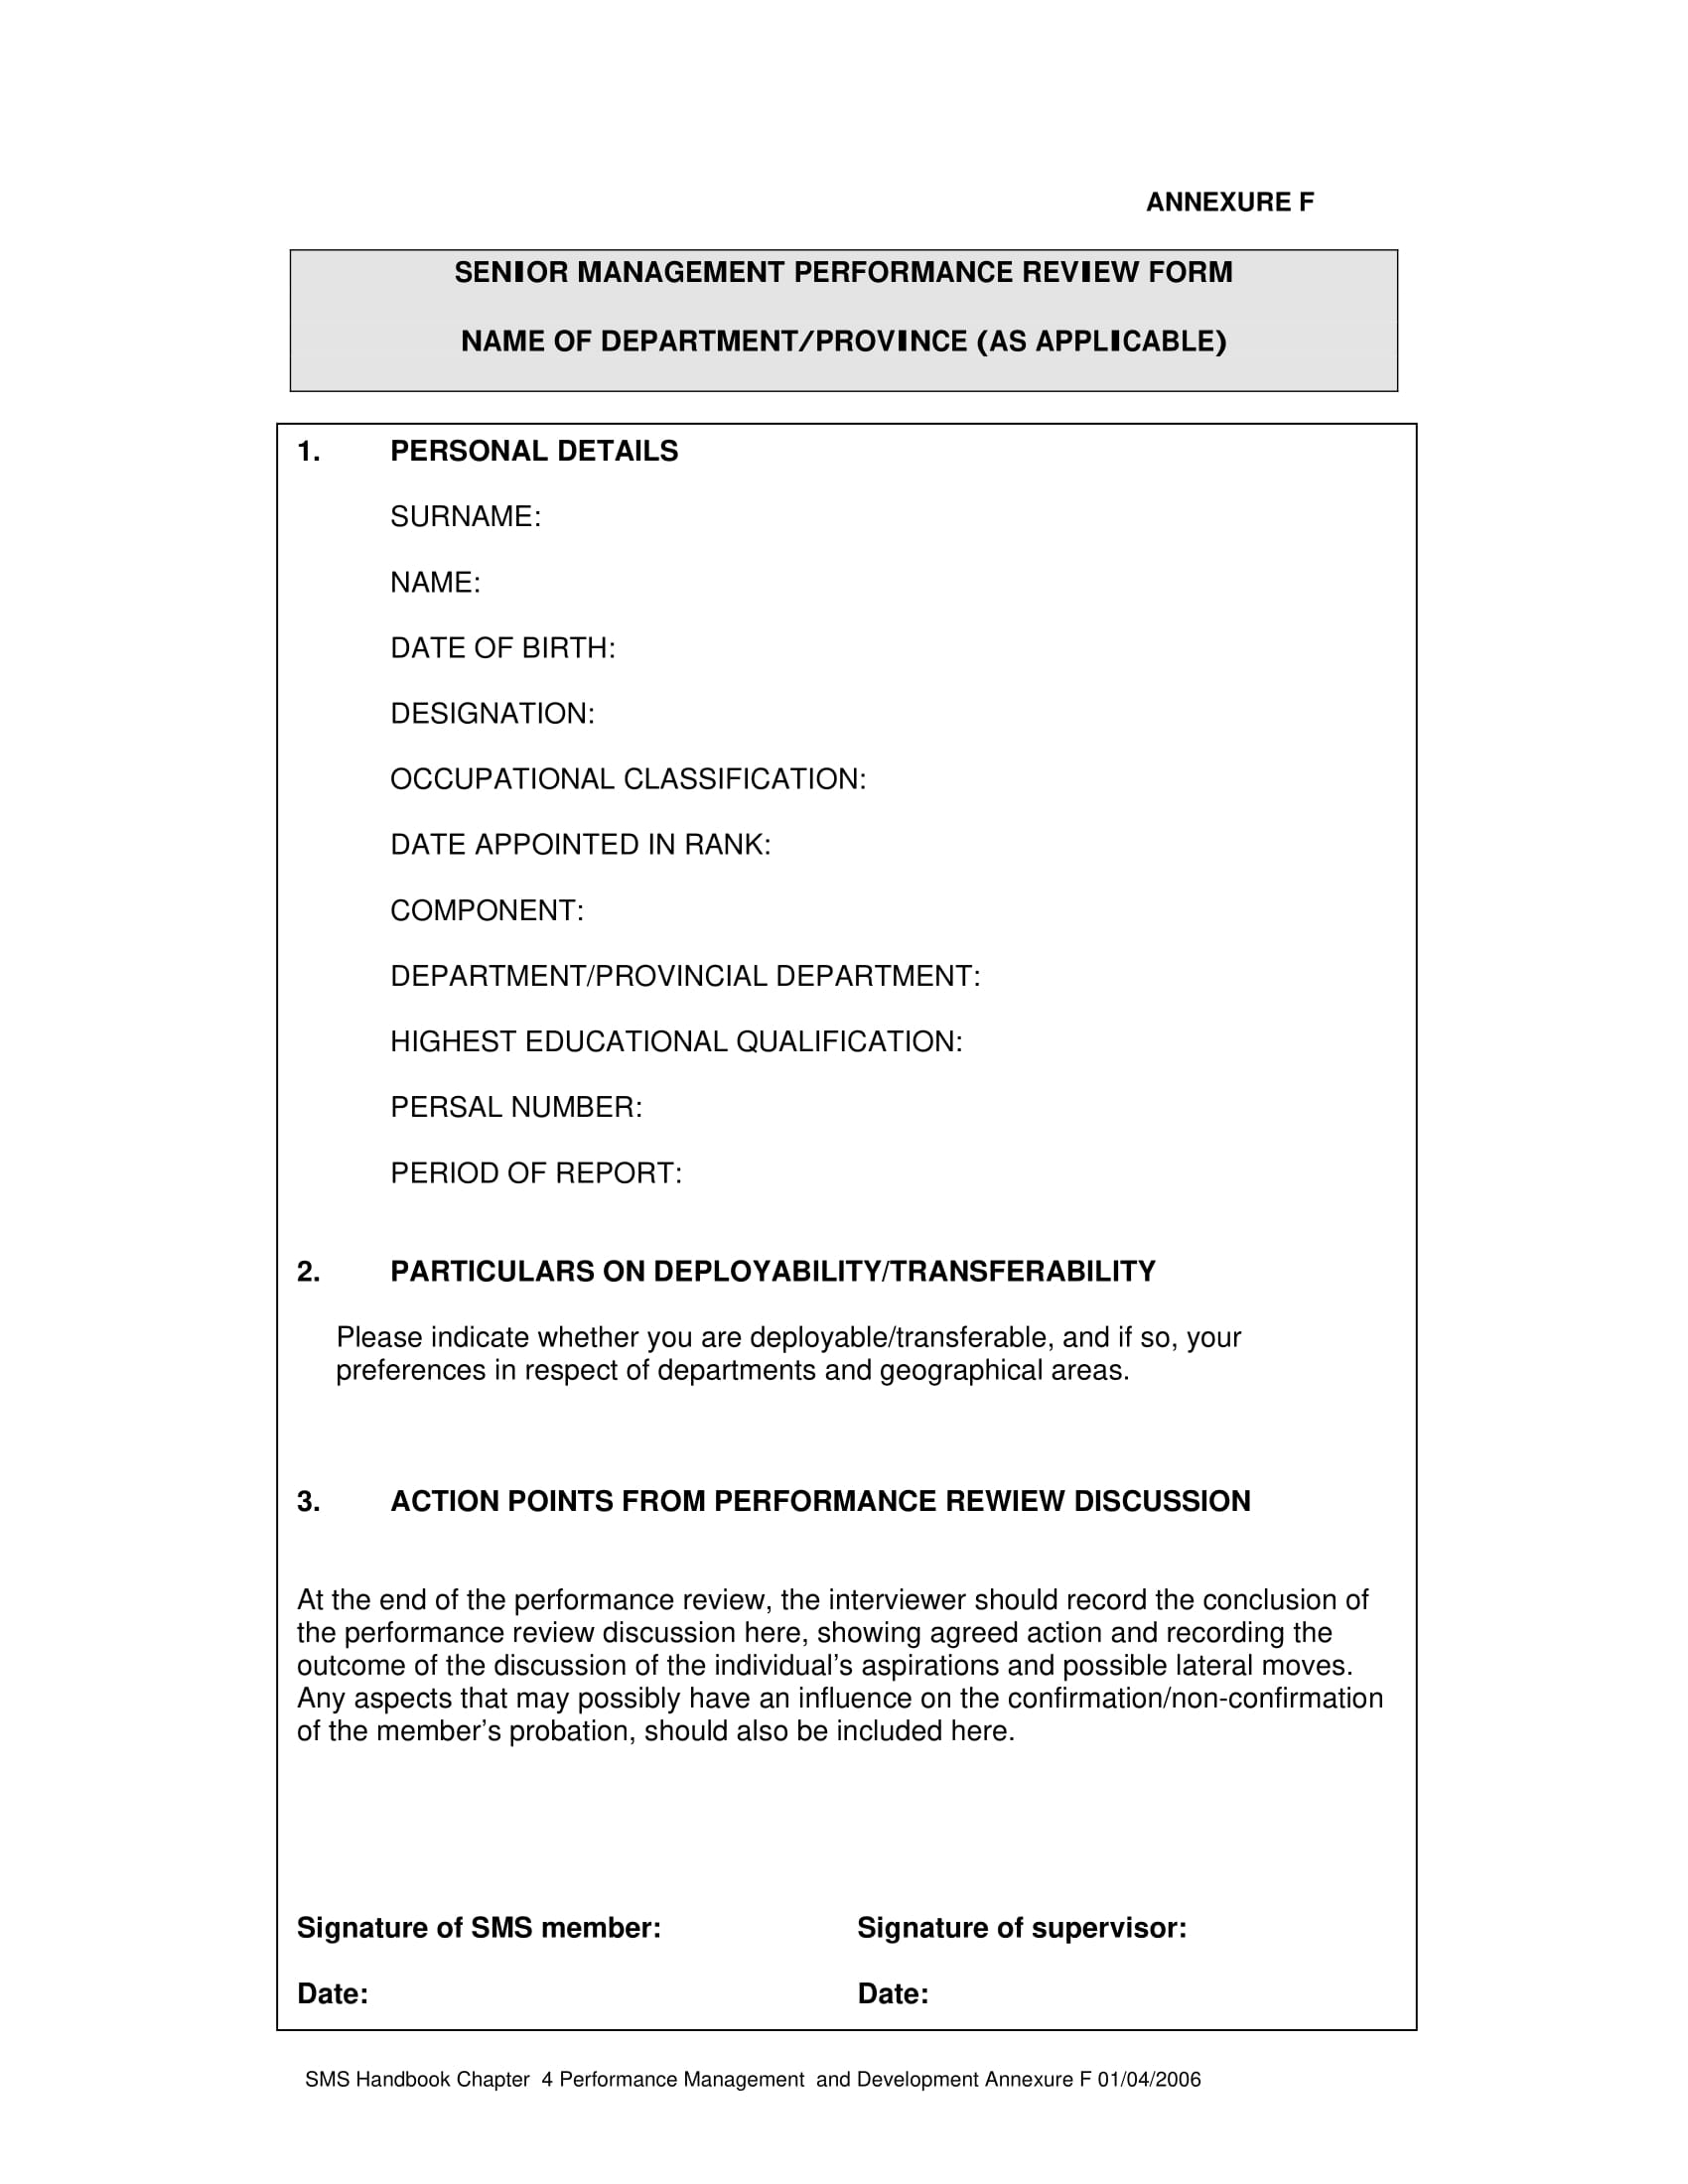 senior management performance review form 1